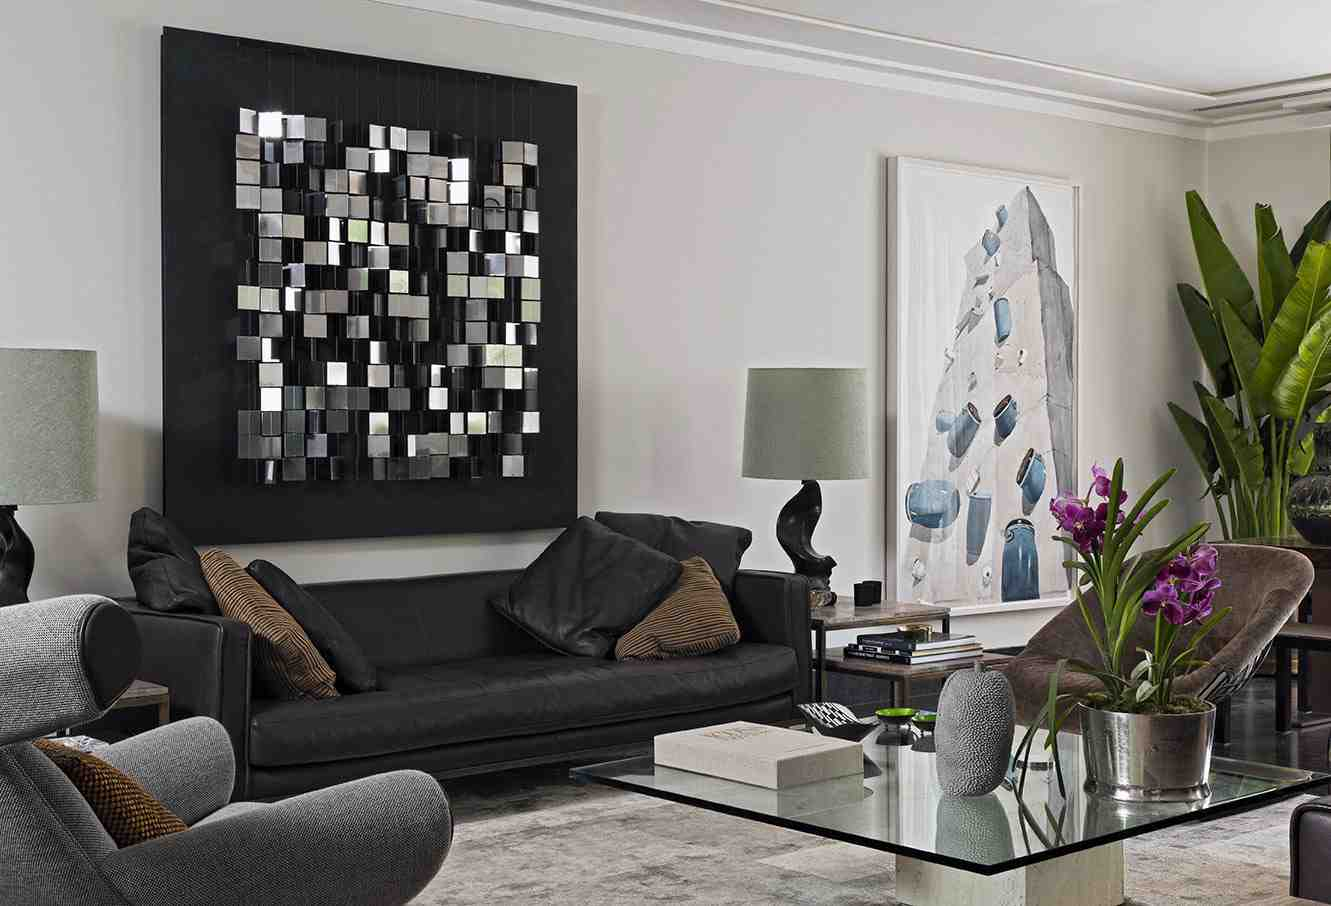 Wall Decorating Ideas Living Room : Living room wall decor options ideasdecor ideas